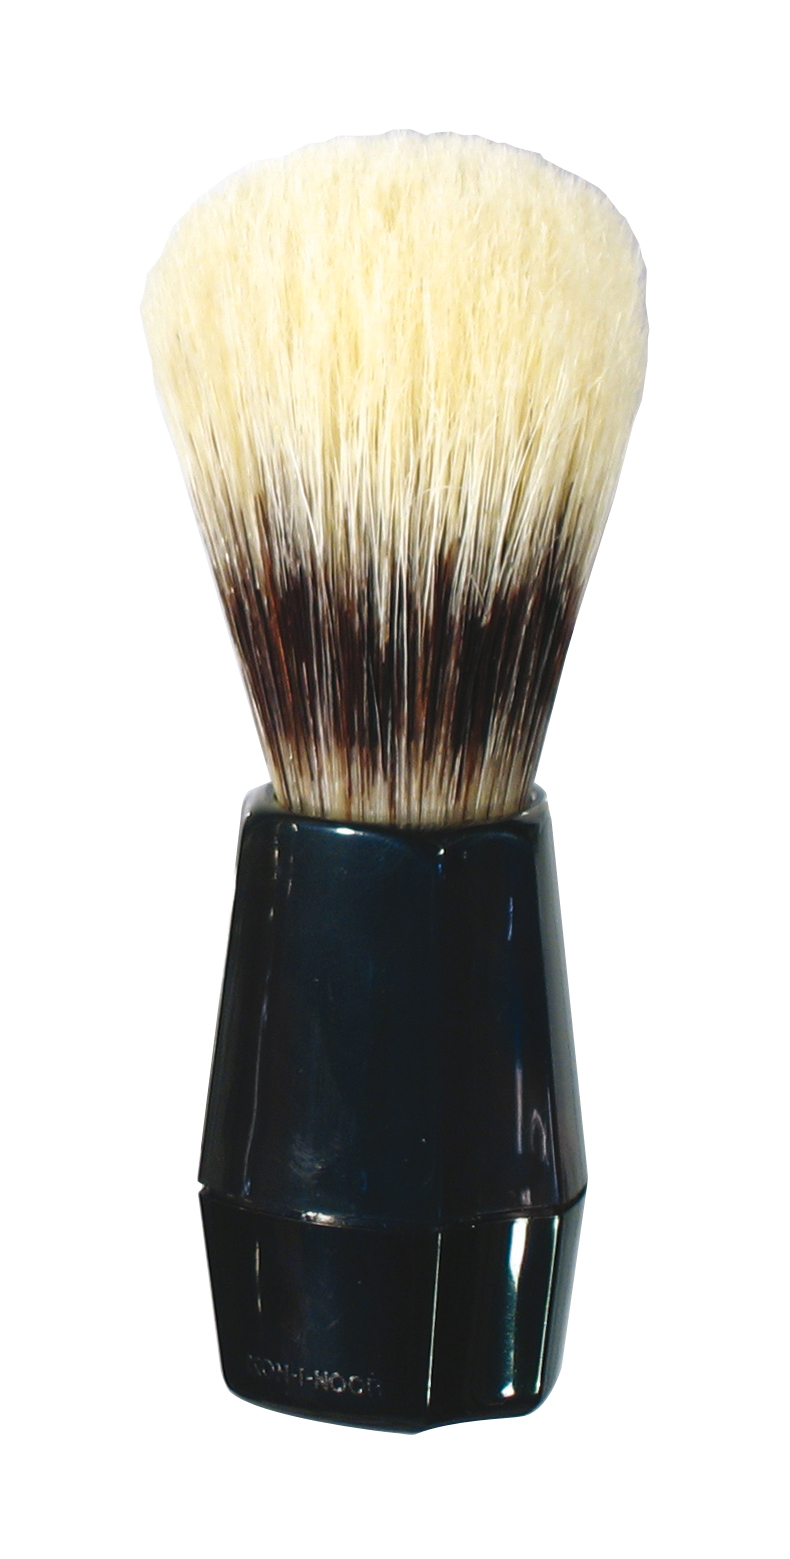 Natural bristles Ø 21 Shaving Brush